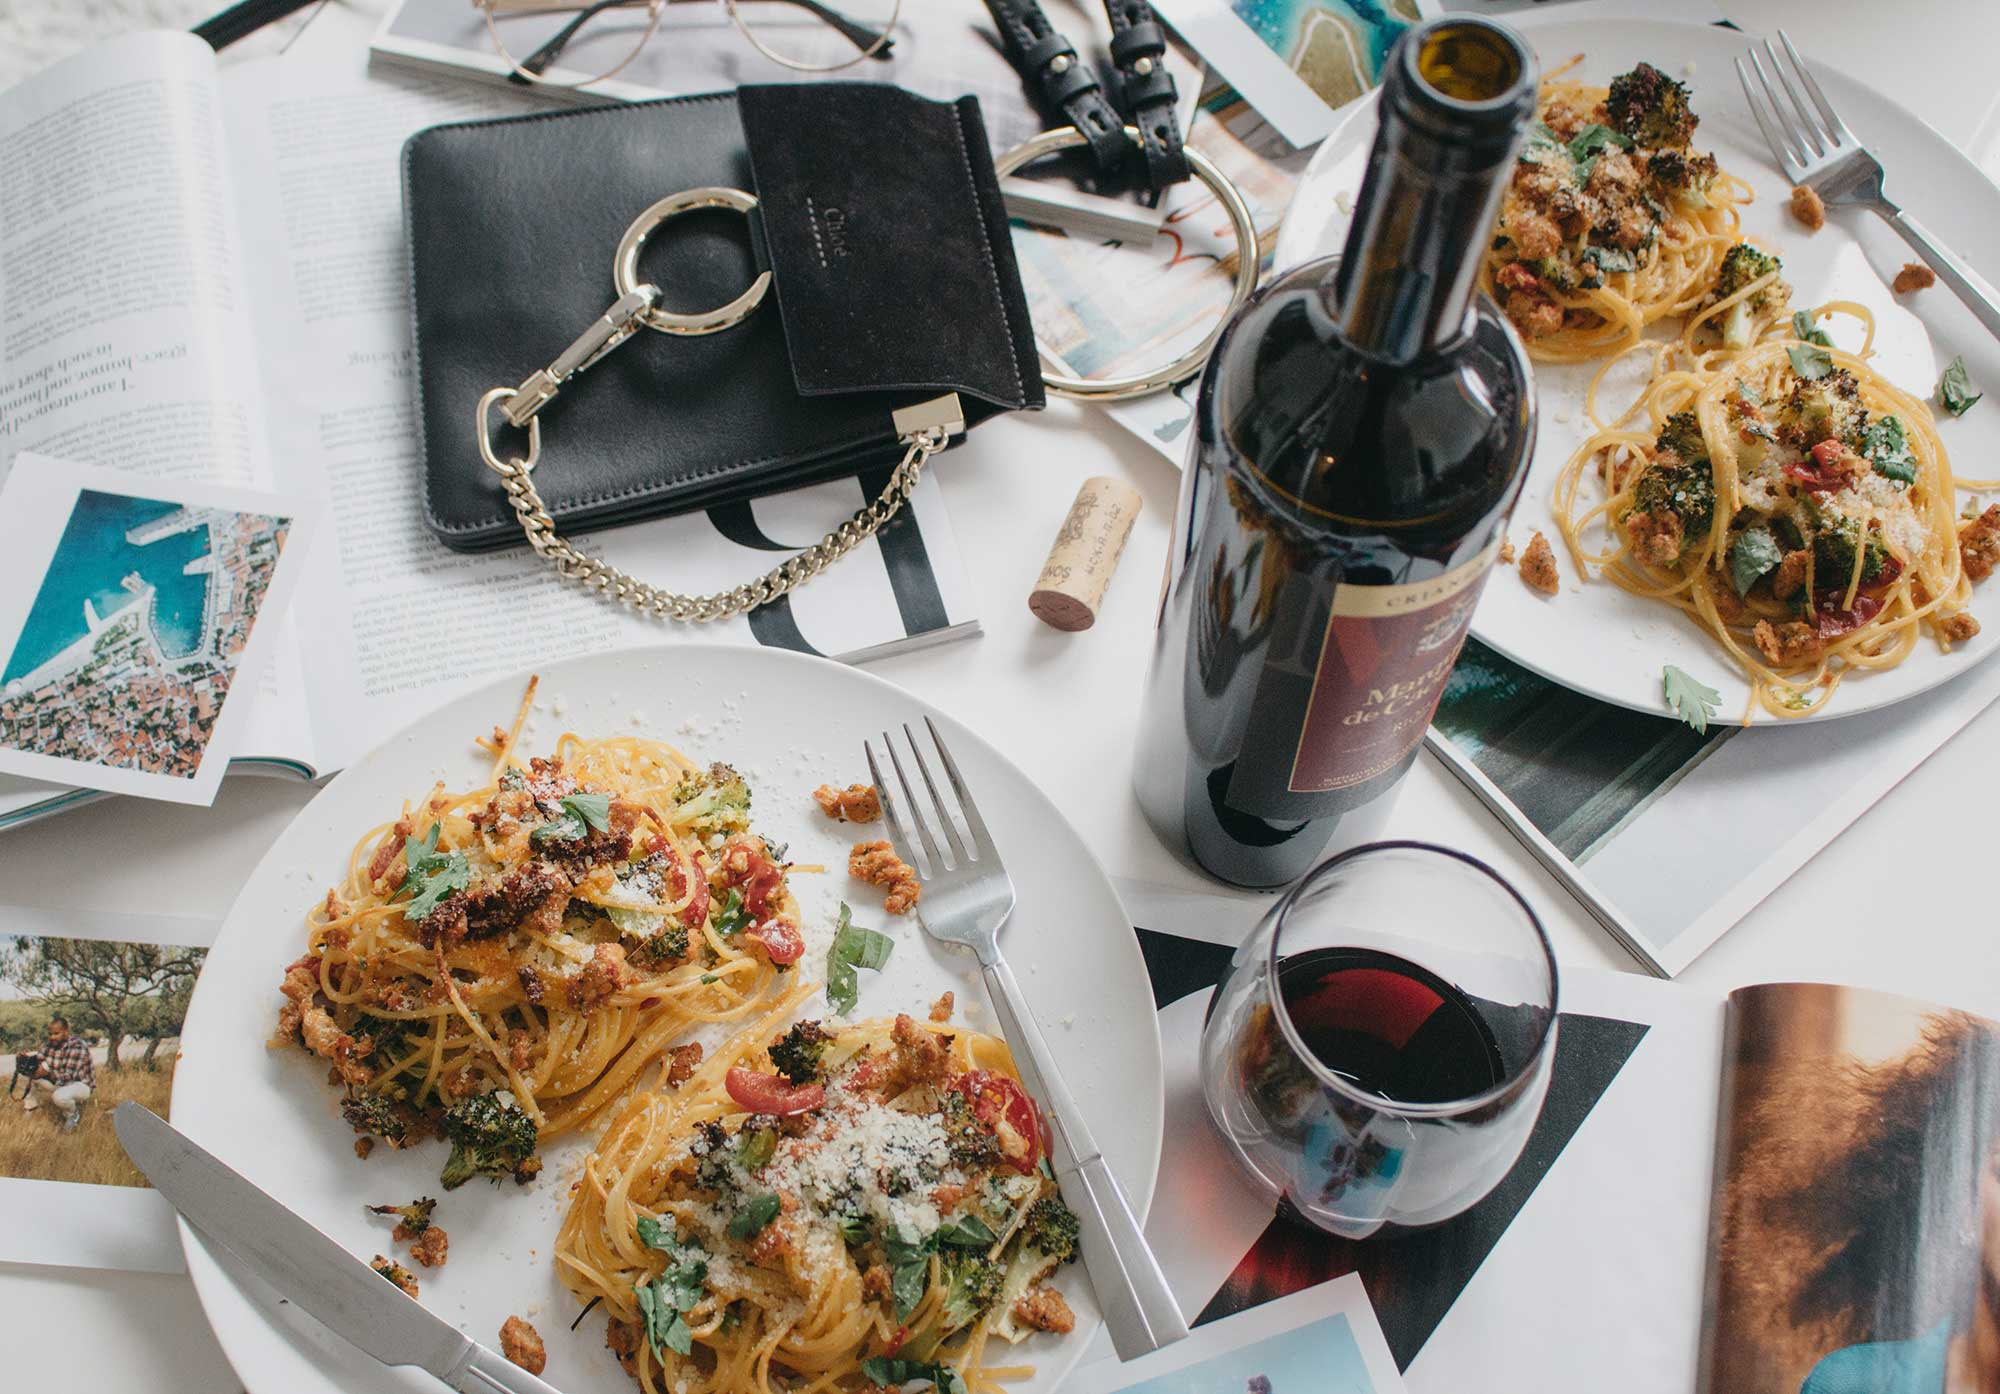 how-to-make-spagetti-nests-with-italian-sausage-broccoli-and-hot-cherry-peppers-flatlay-dinner-11.jpg